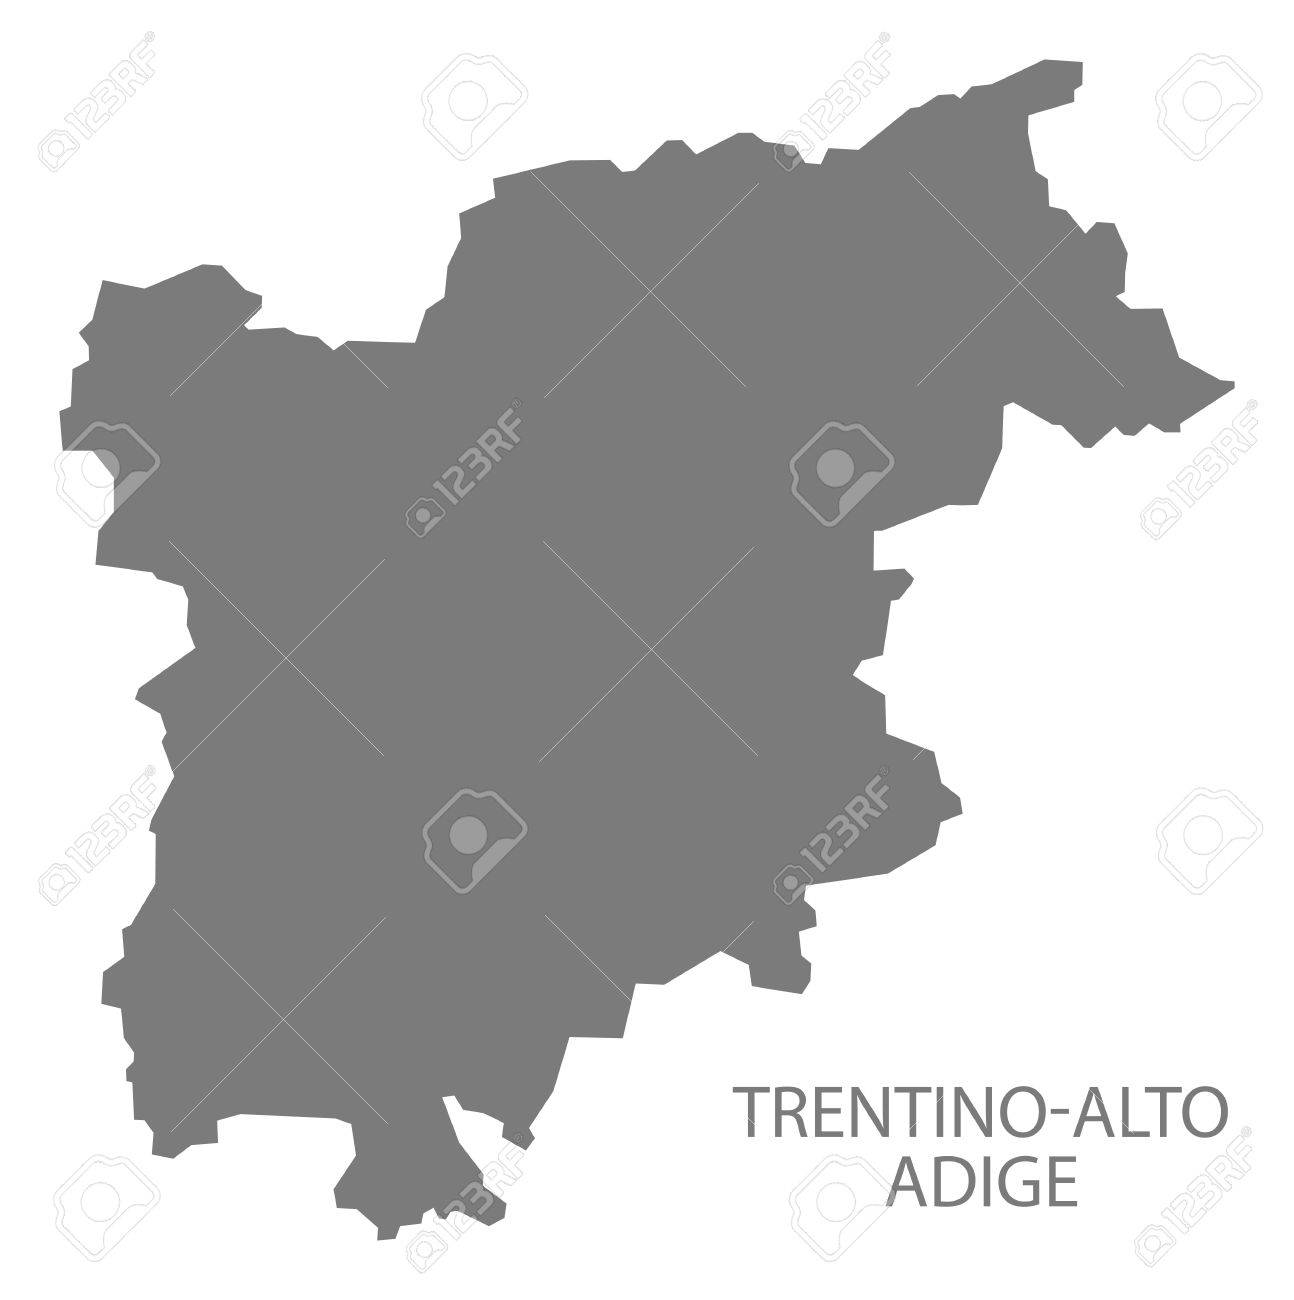 TrentinoAlto Adige Italy Map In Grey Royalty Free Cliparts Vectors